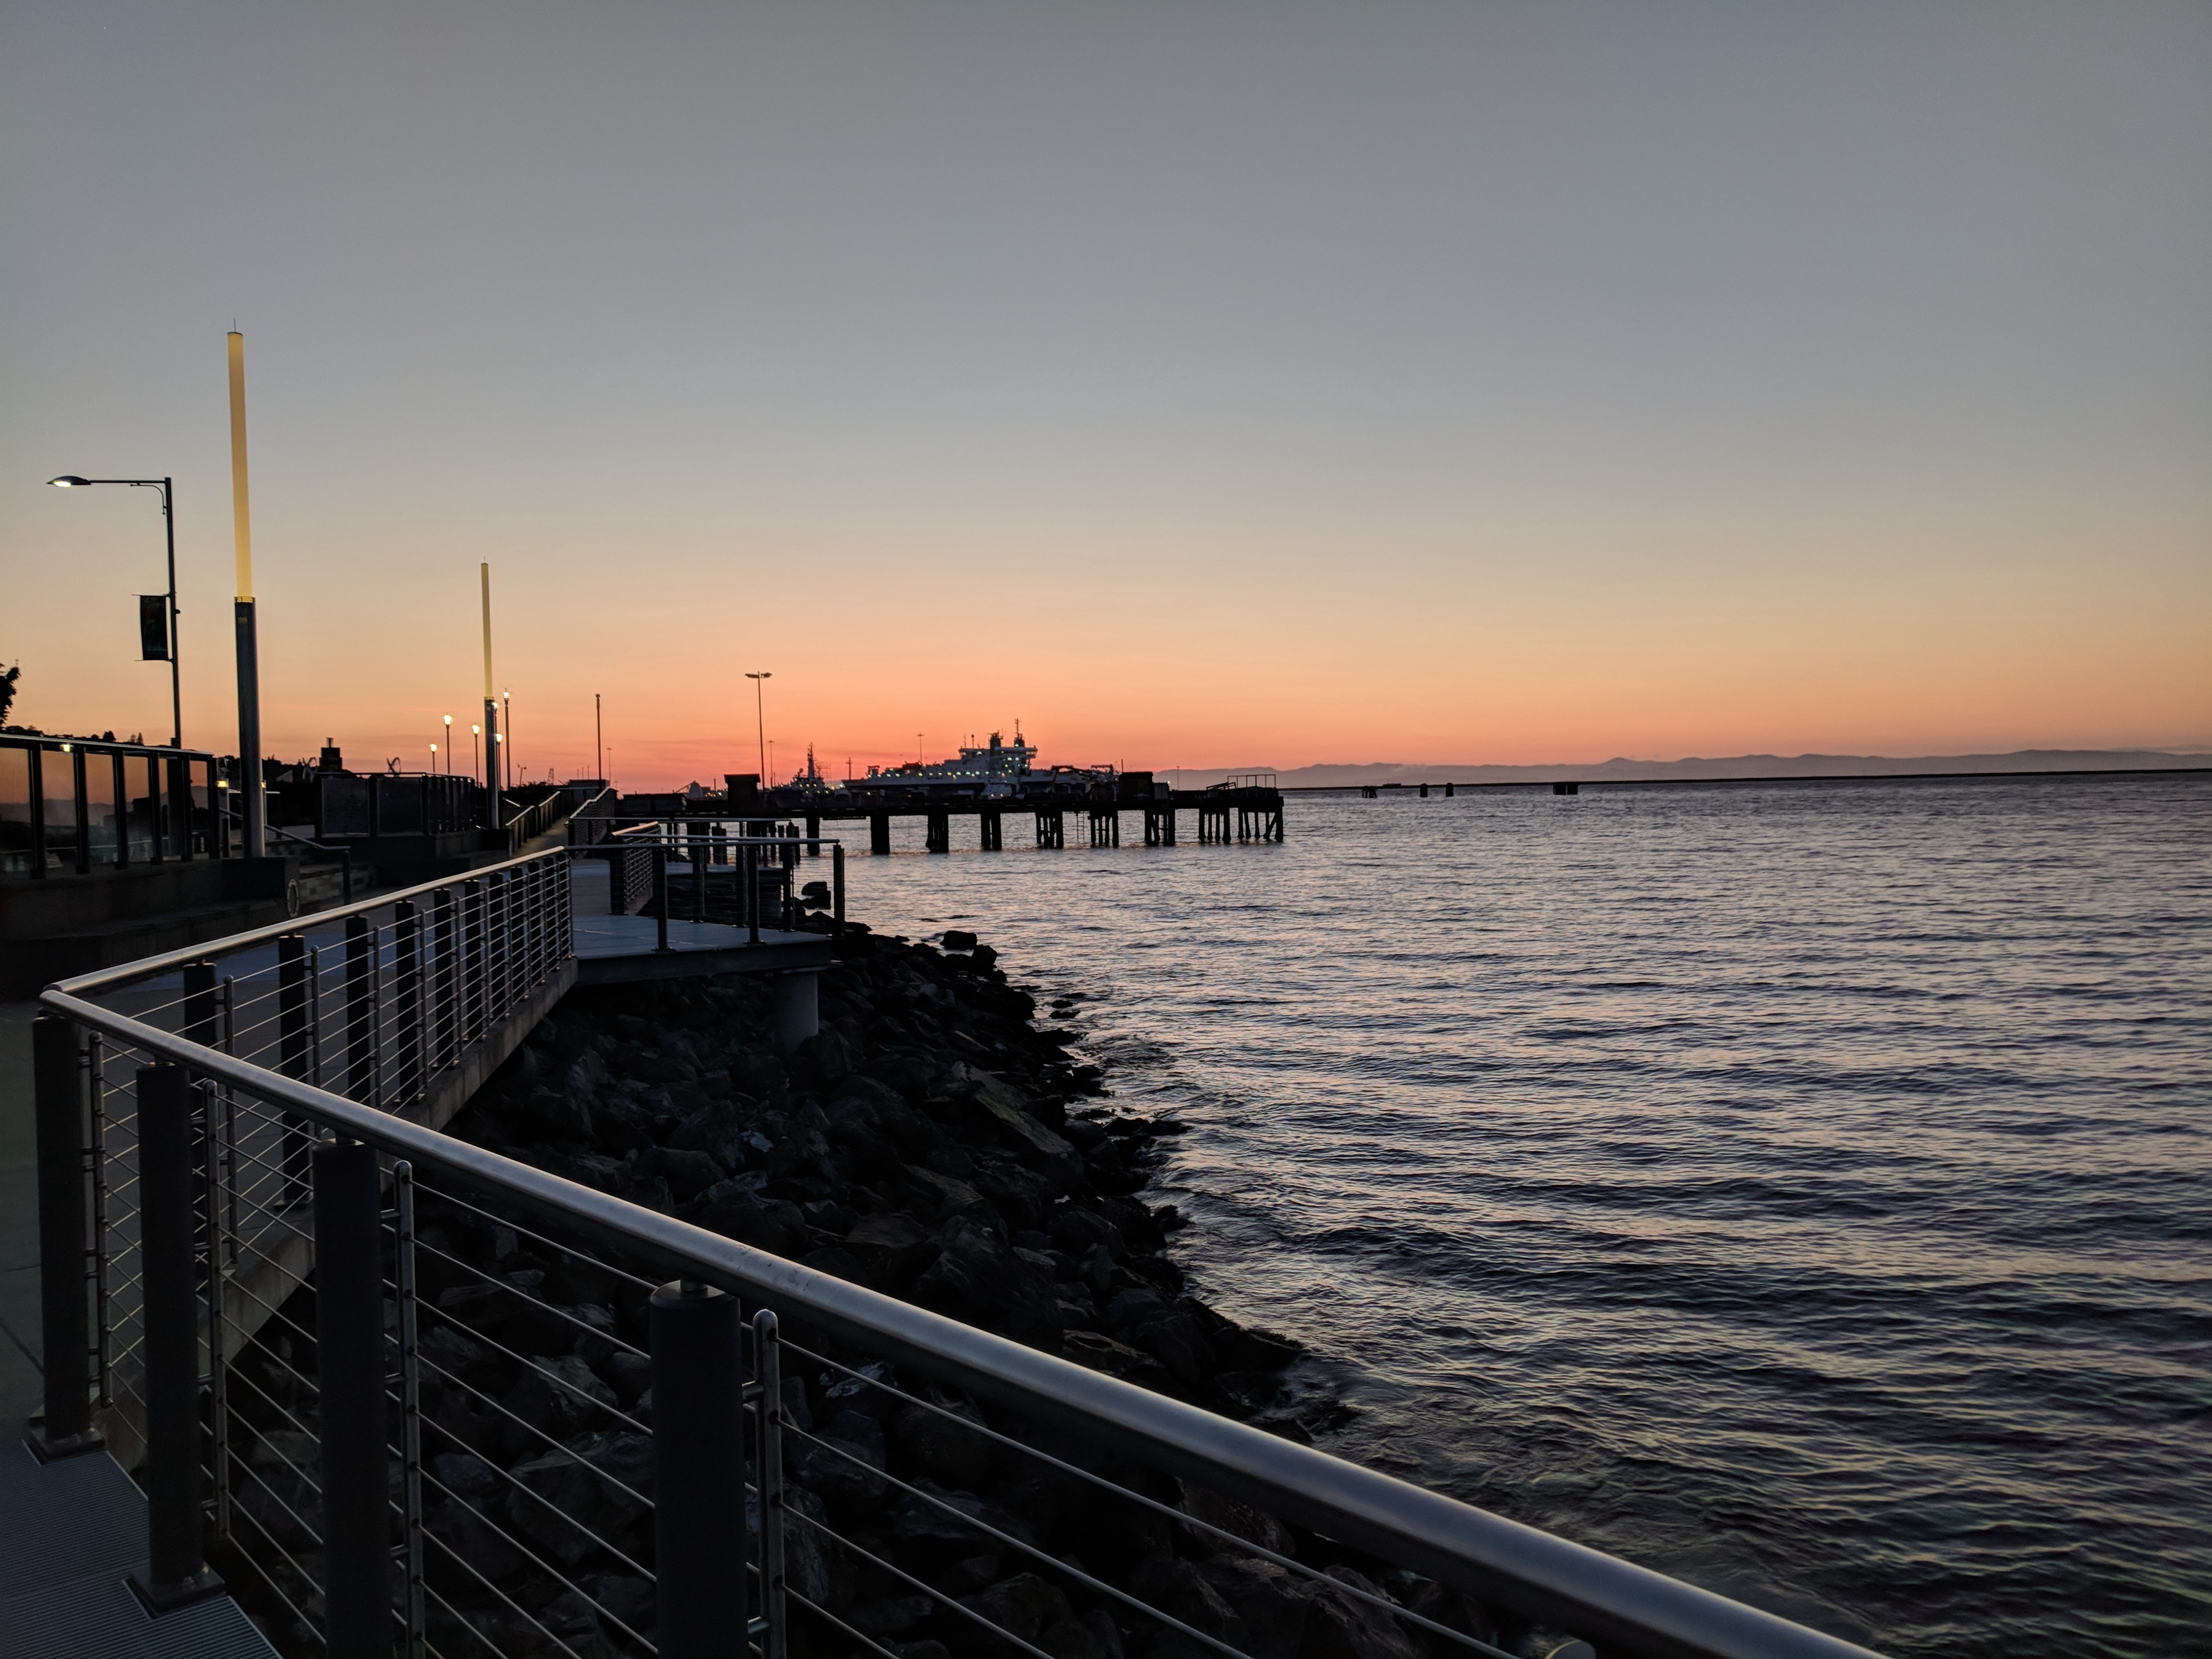 Picture of a dock and boat at sunset